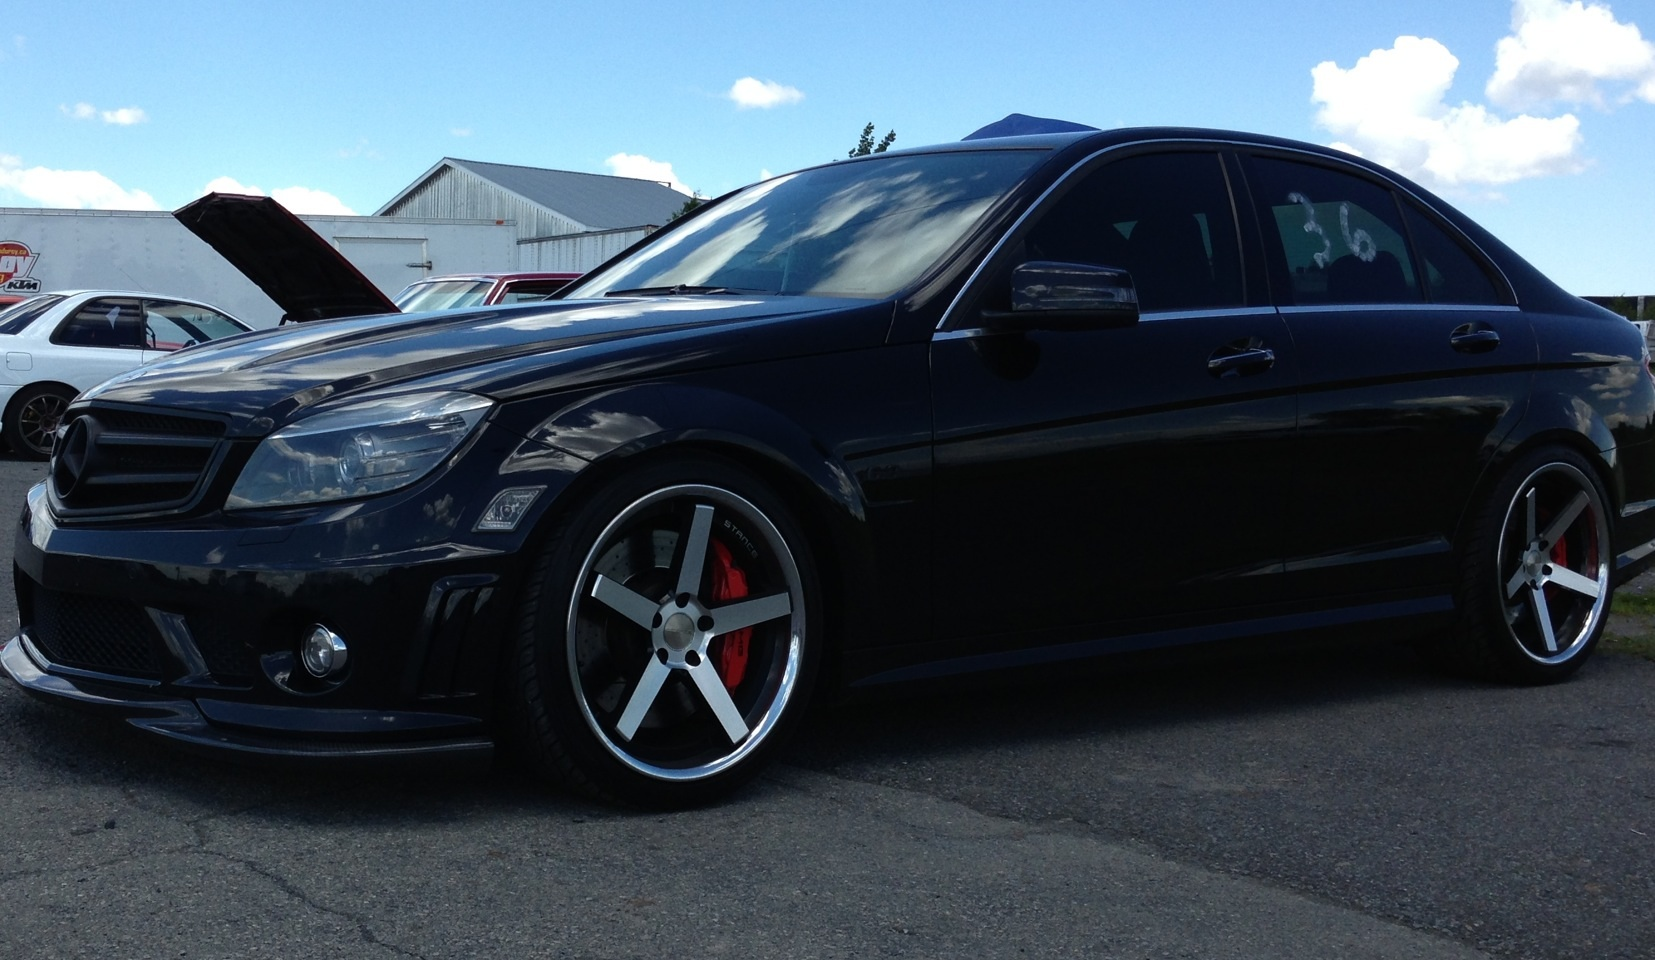 2010 Obsidian black Mercedes-Benz C63 AMG P31 picture, mods, upgrades